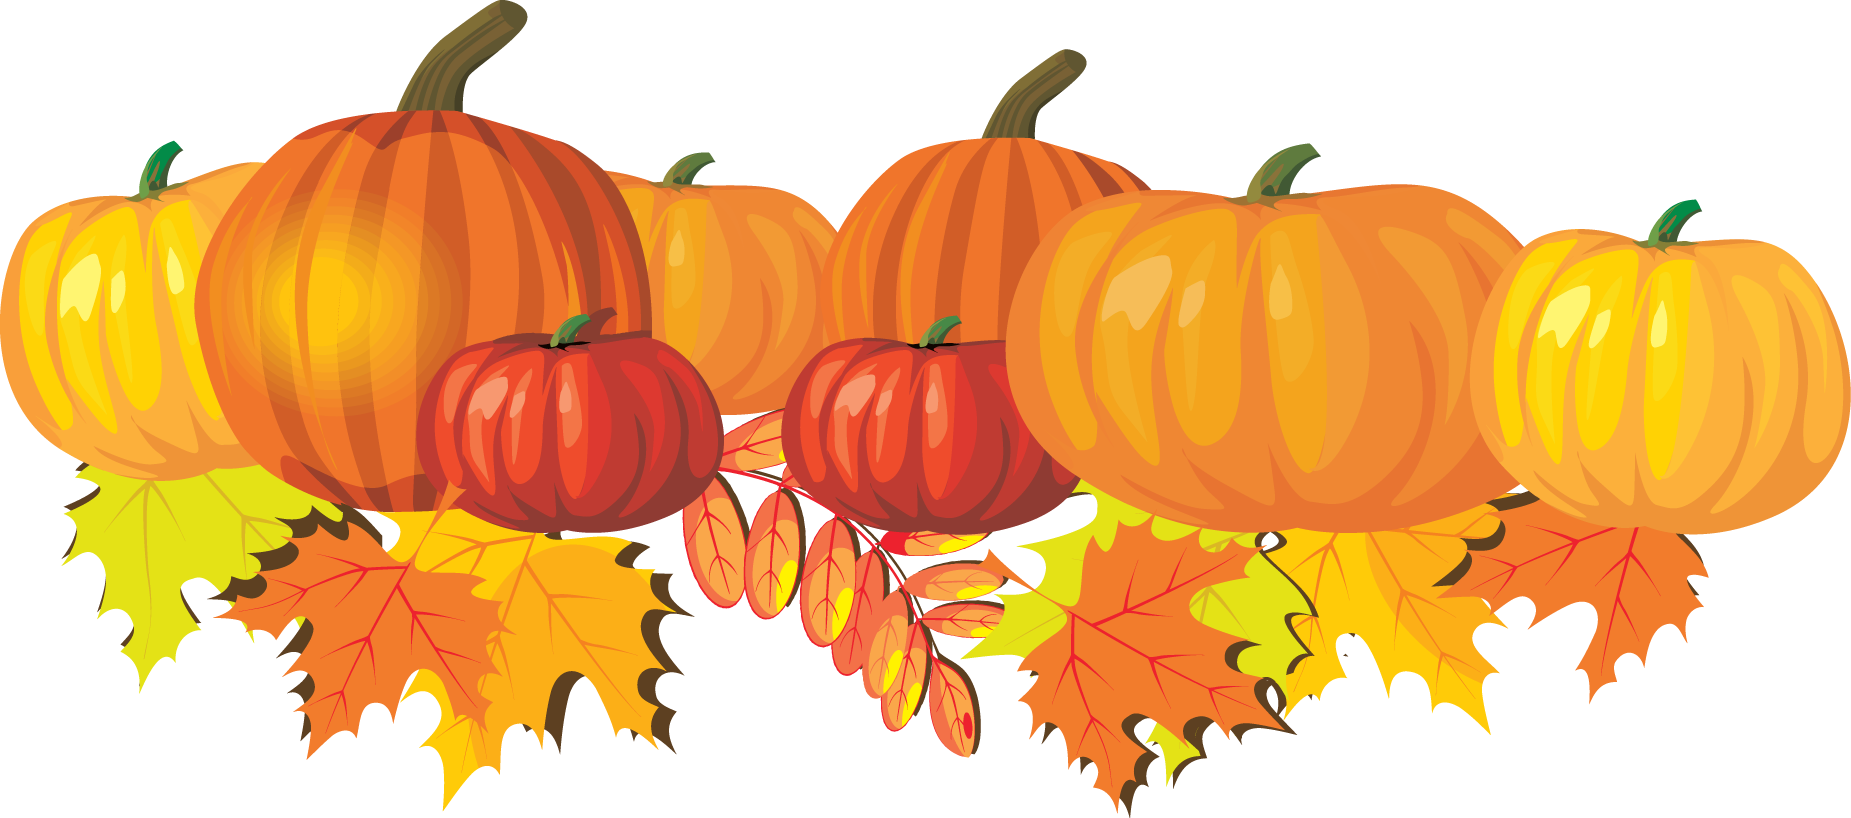 Free clipart of a pumpkin clip art transparent stock Pumpkins clip art - Clipartix clip art transparent stock